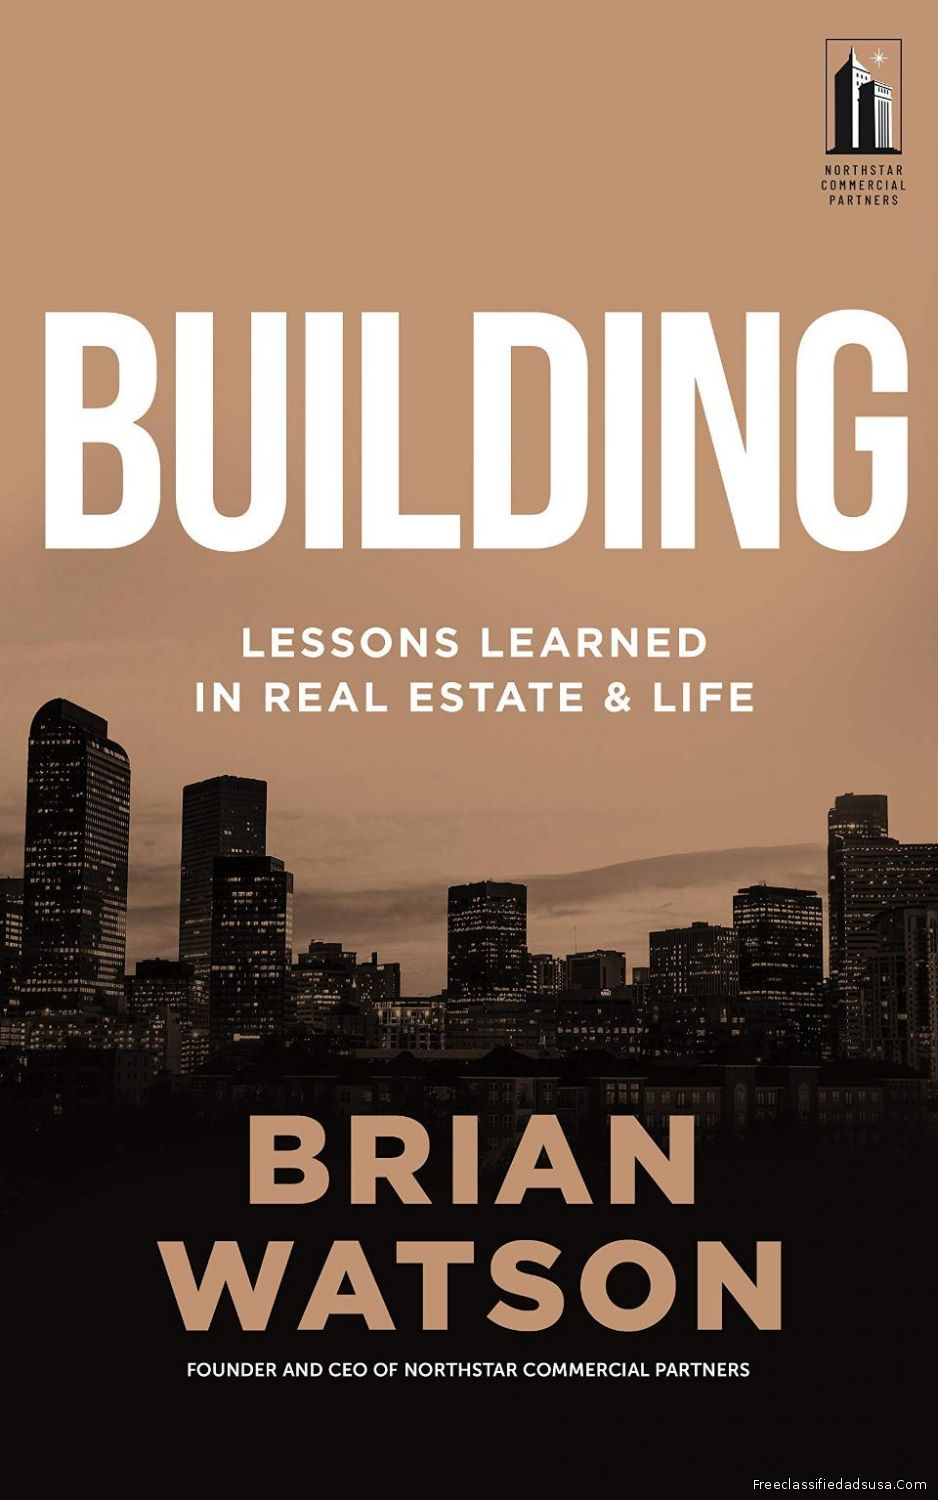 Buy Building book By Brain Watson Online at Low Price - Amazon.in